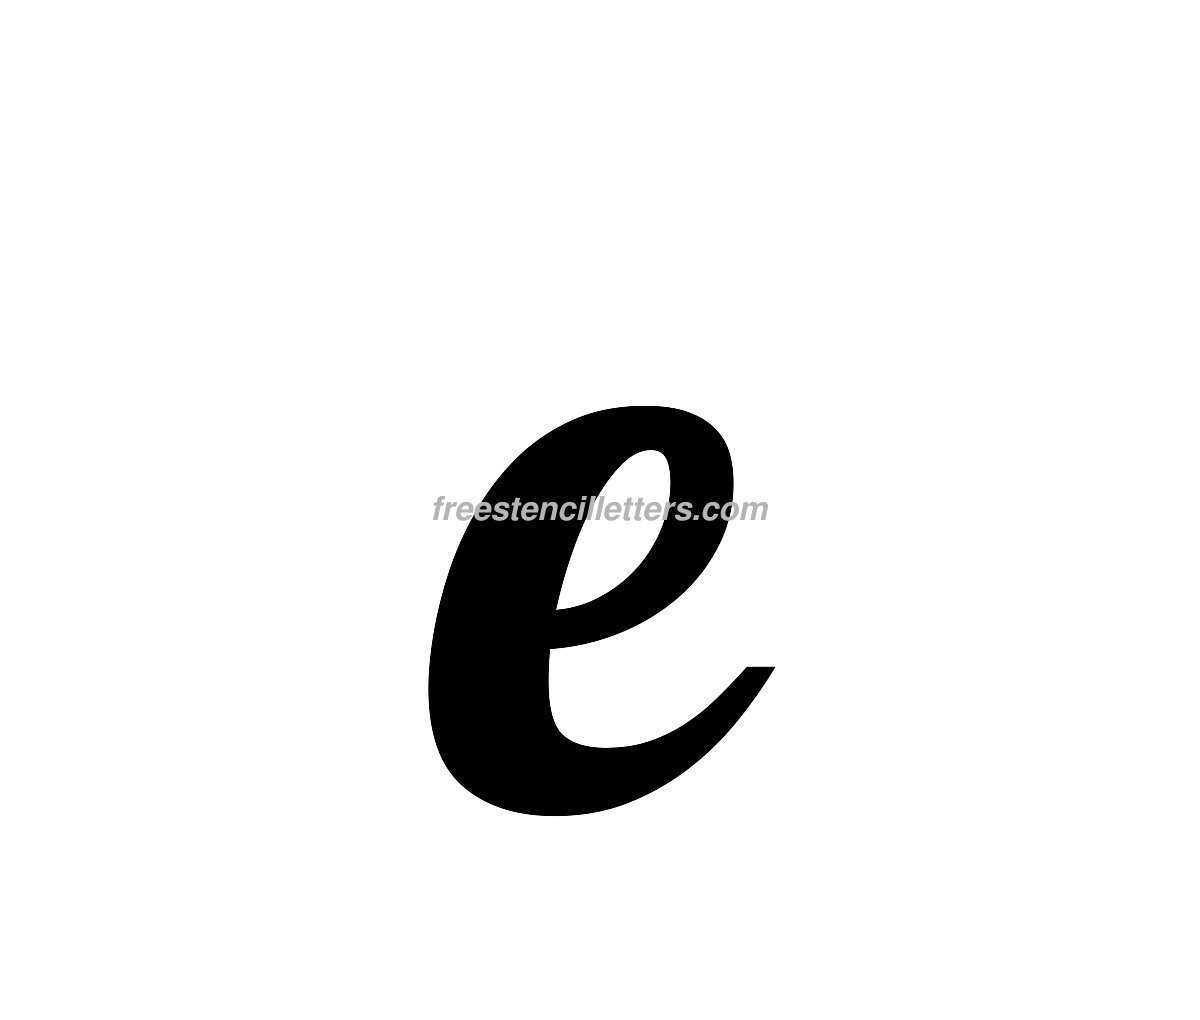 small-e  Inch Letter T Stencil Template on templates upper lowercase, wide block, designs printable, free printable alphabet, free printable, printable upper lower case together,